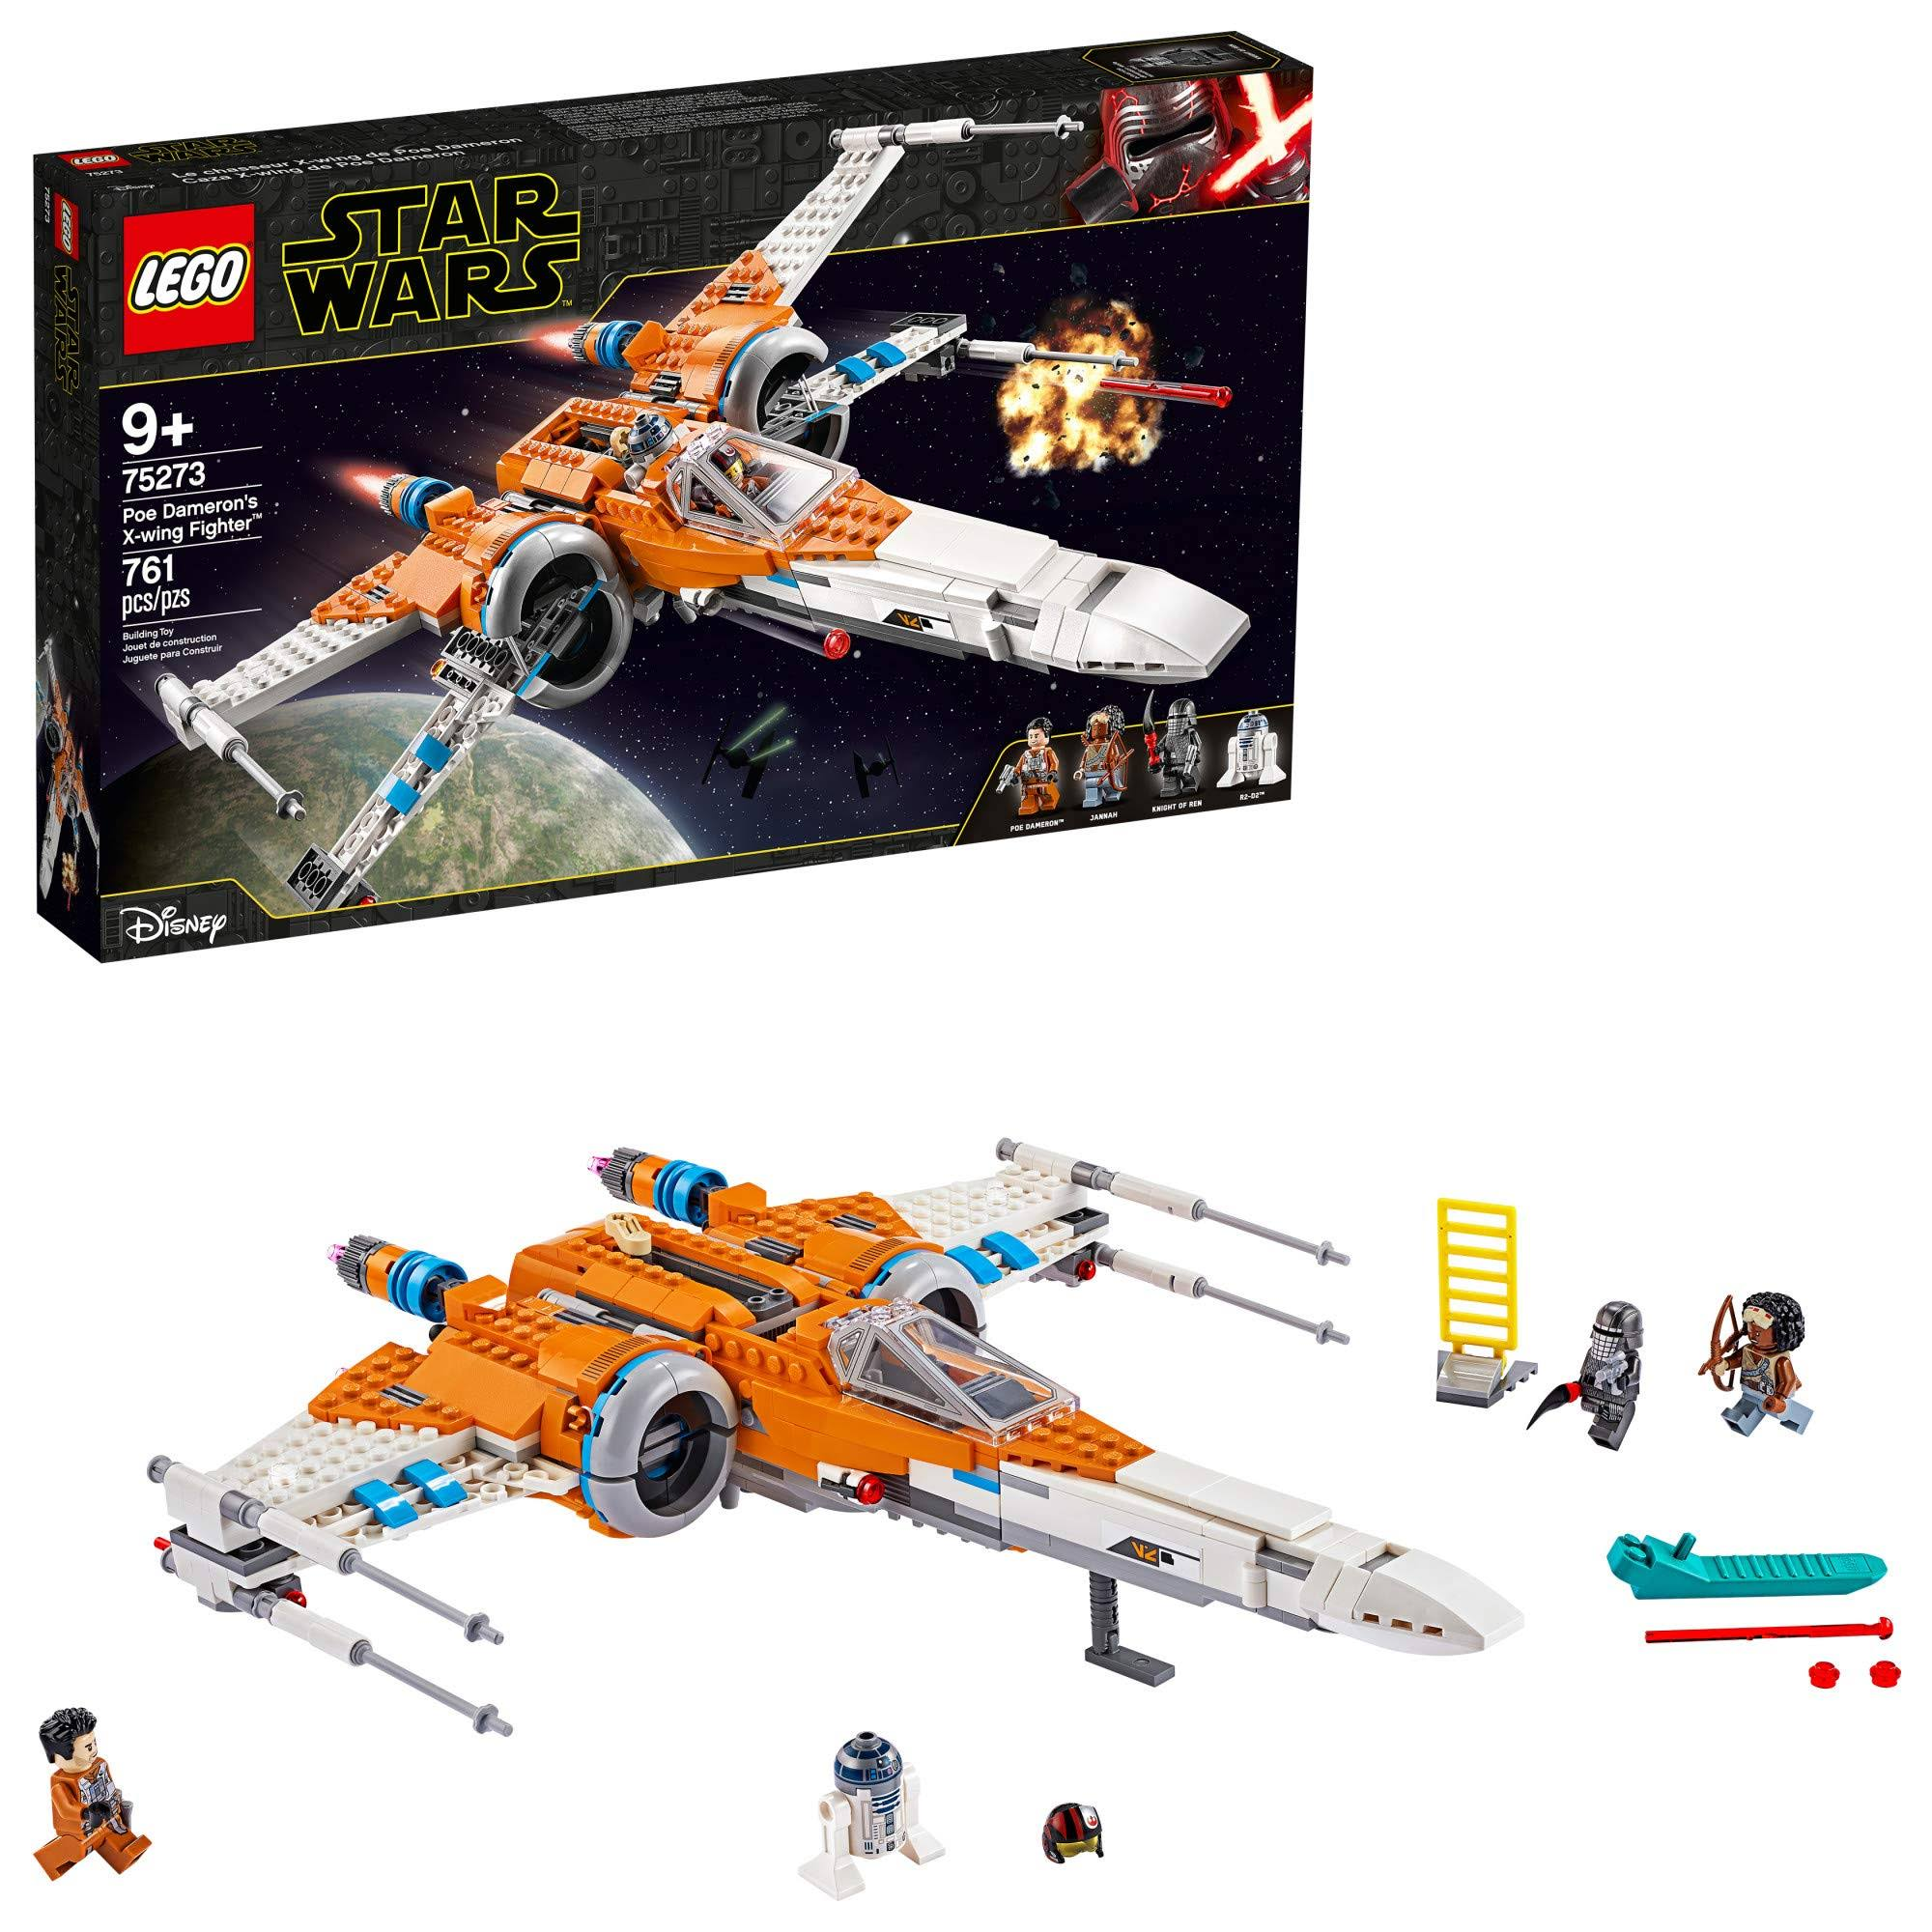 Lego Star Wars Poe Dameron's X Wing Fighter Building Toy - 761pcs